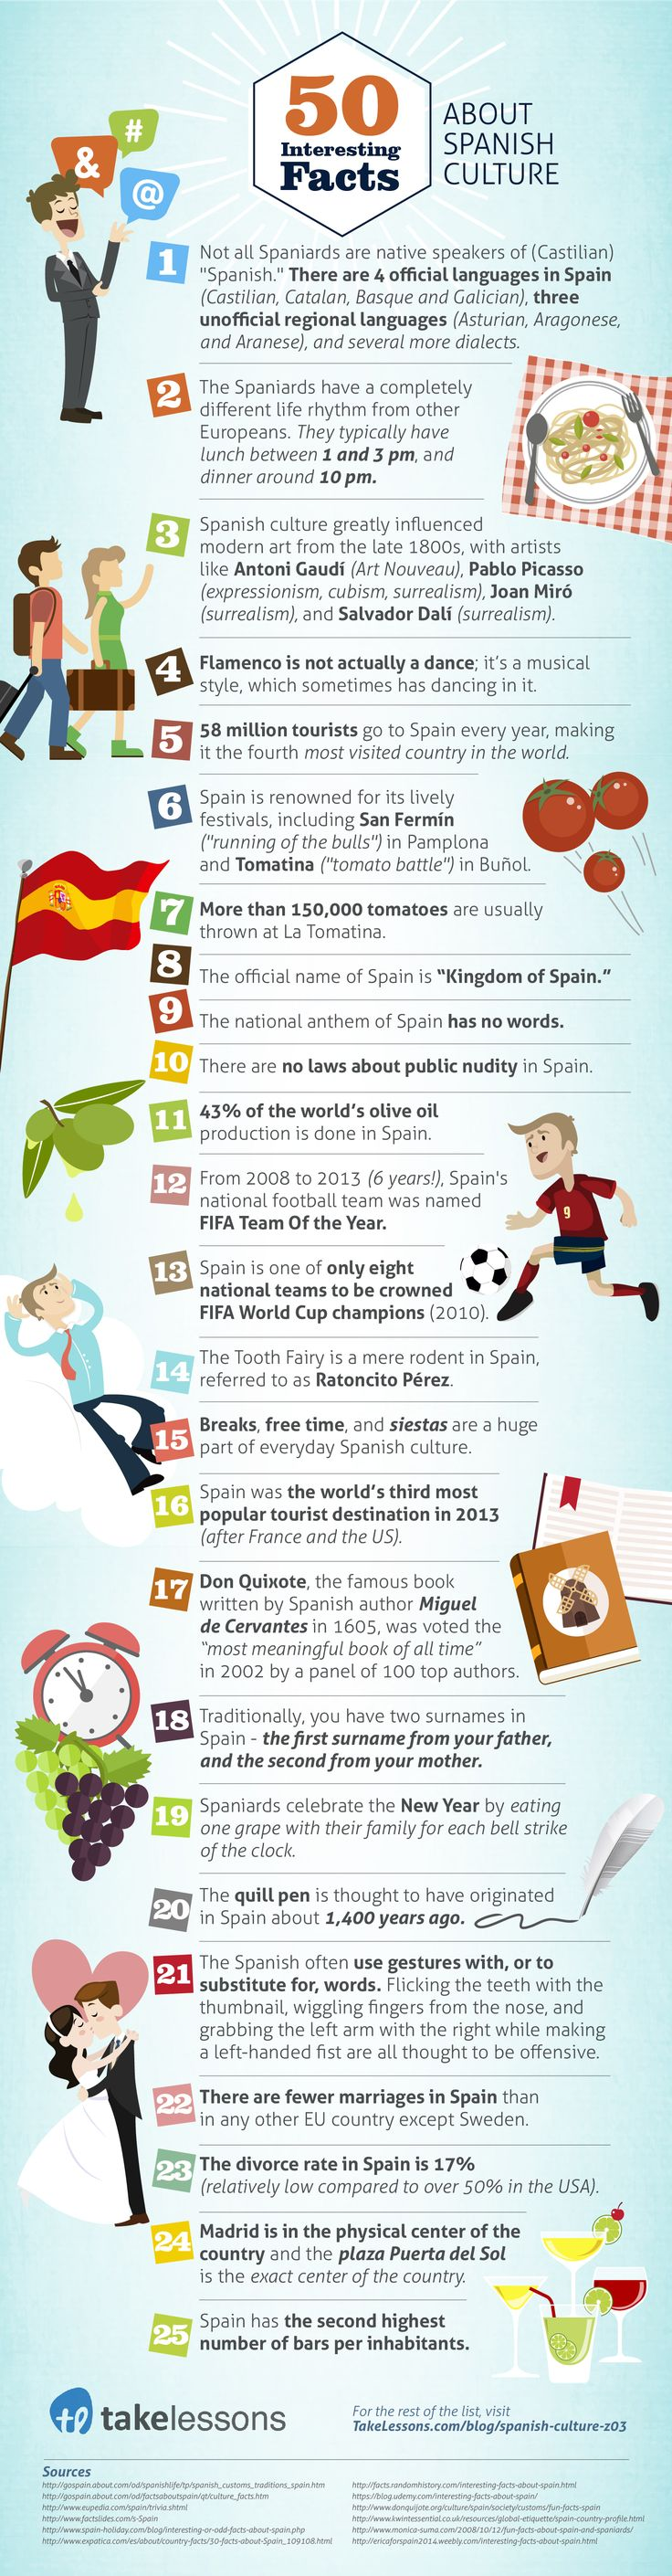 Great facts about the culture of Spain!